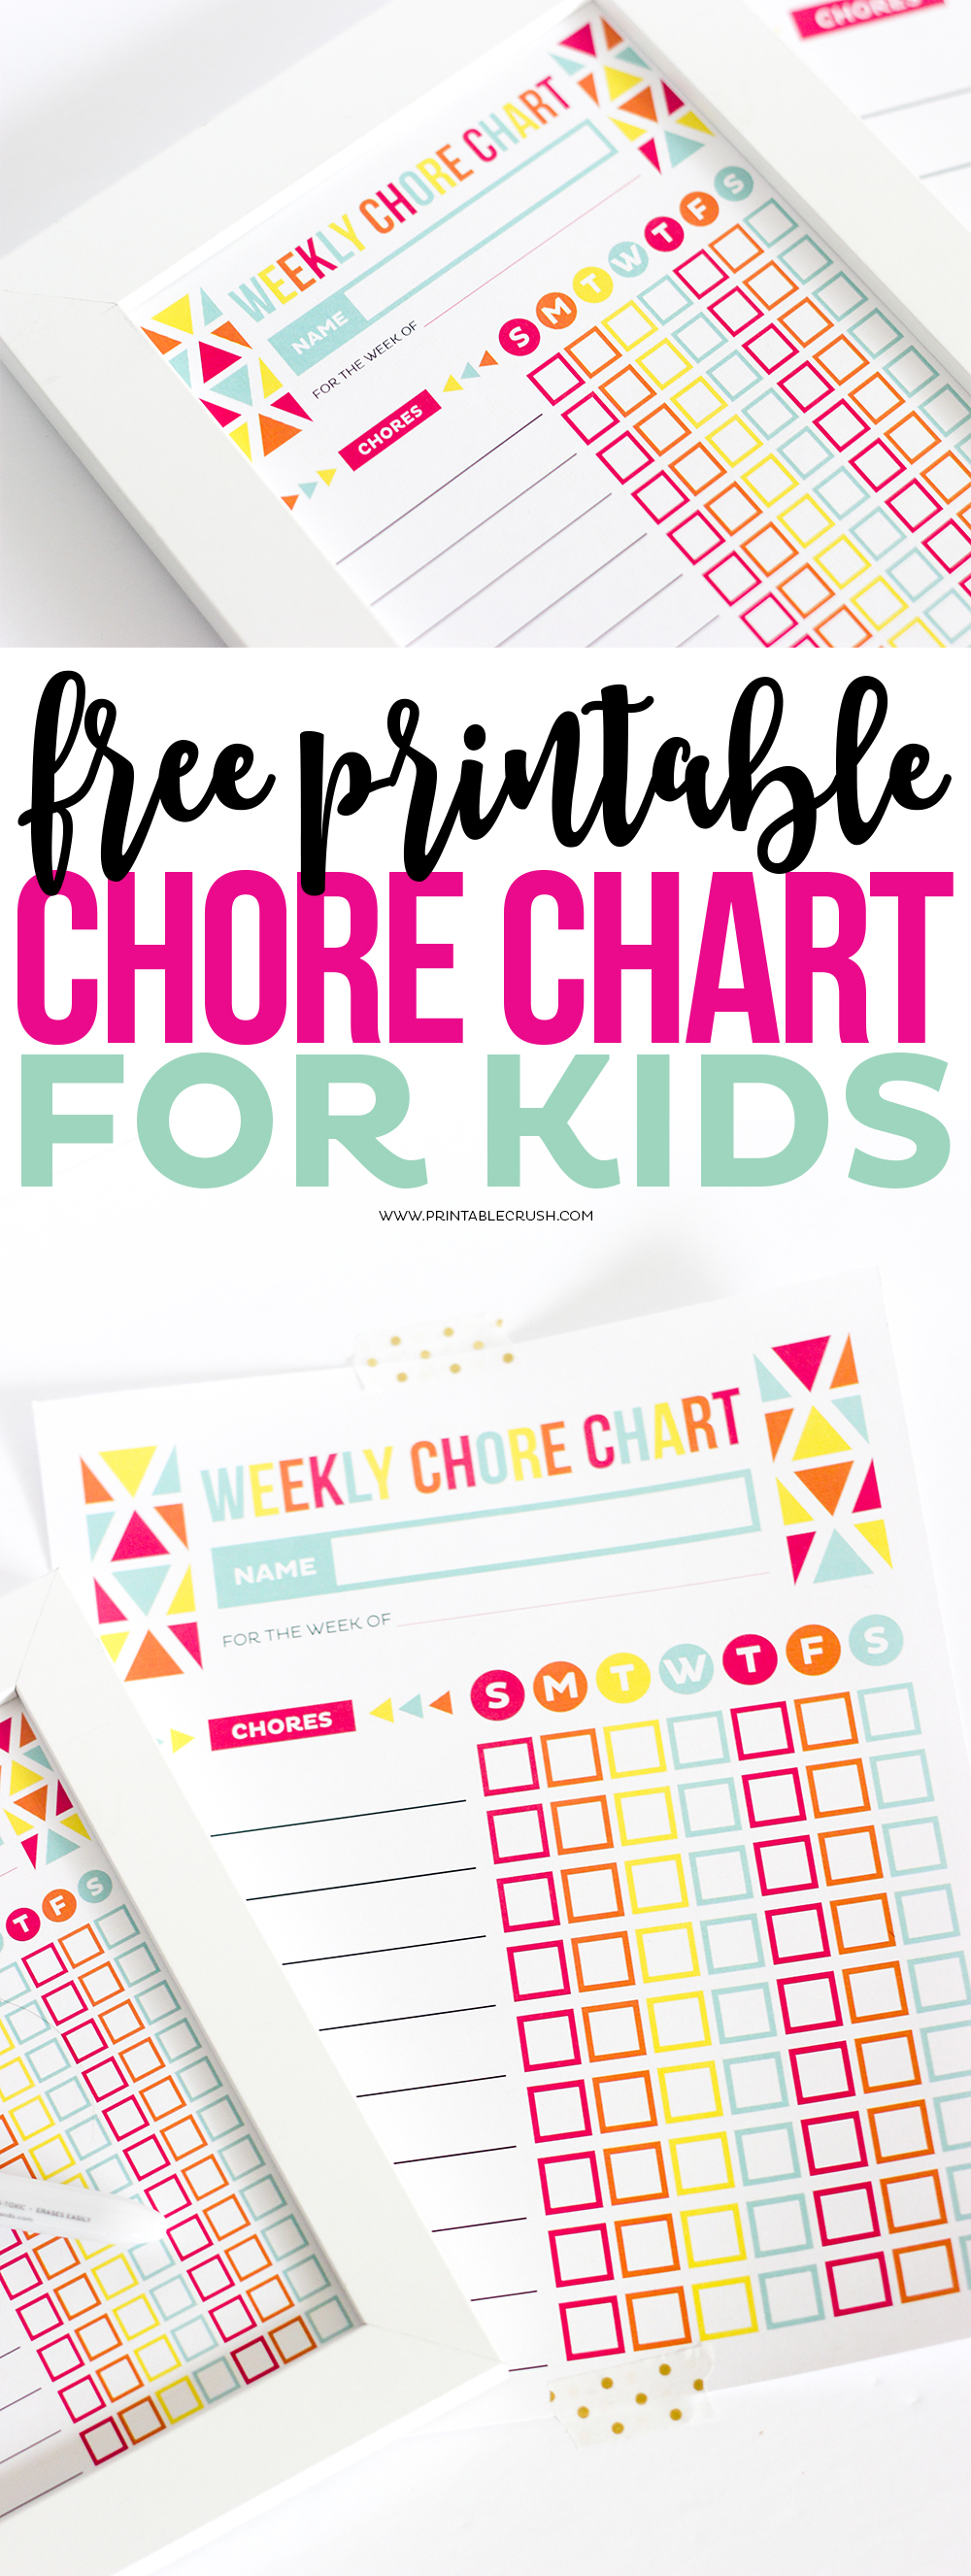 image relating to Free Printable Kids Chore Chart named Chore Charts For Children - Preserve Young children Upon Observe Utilizing My Totally free